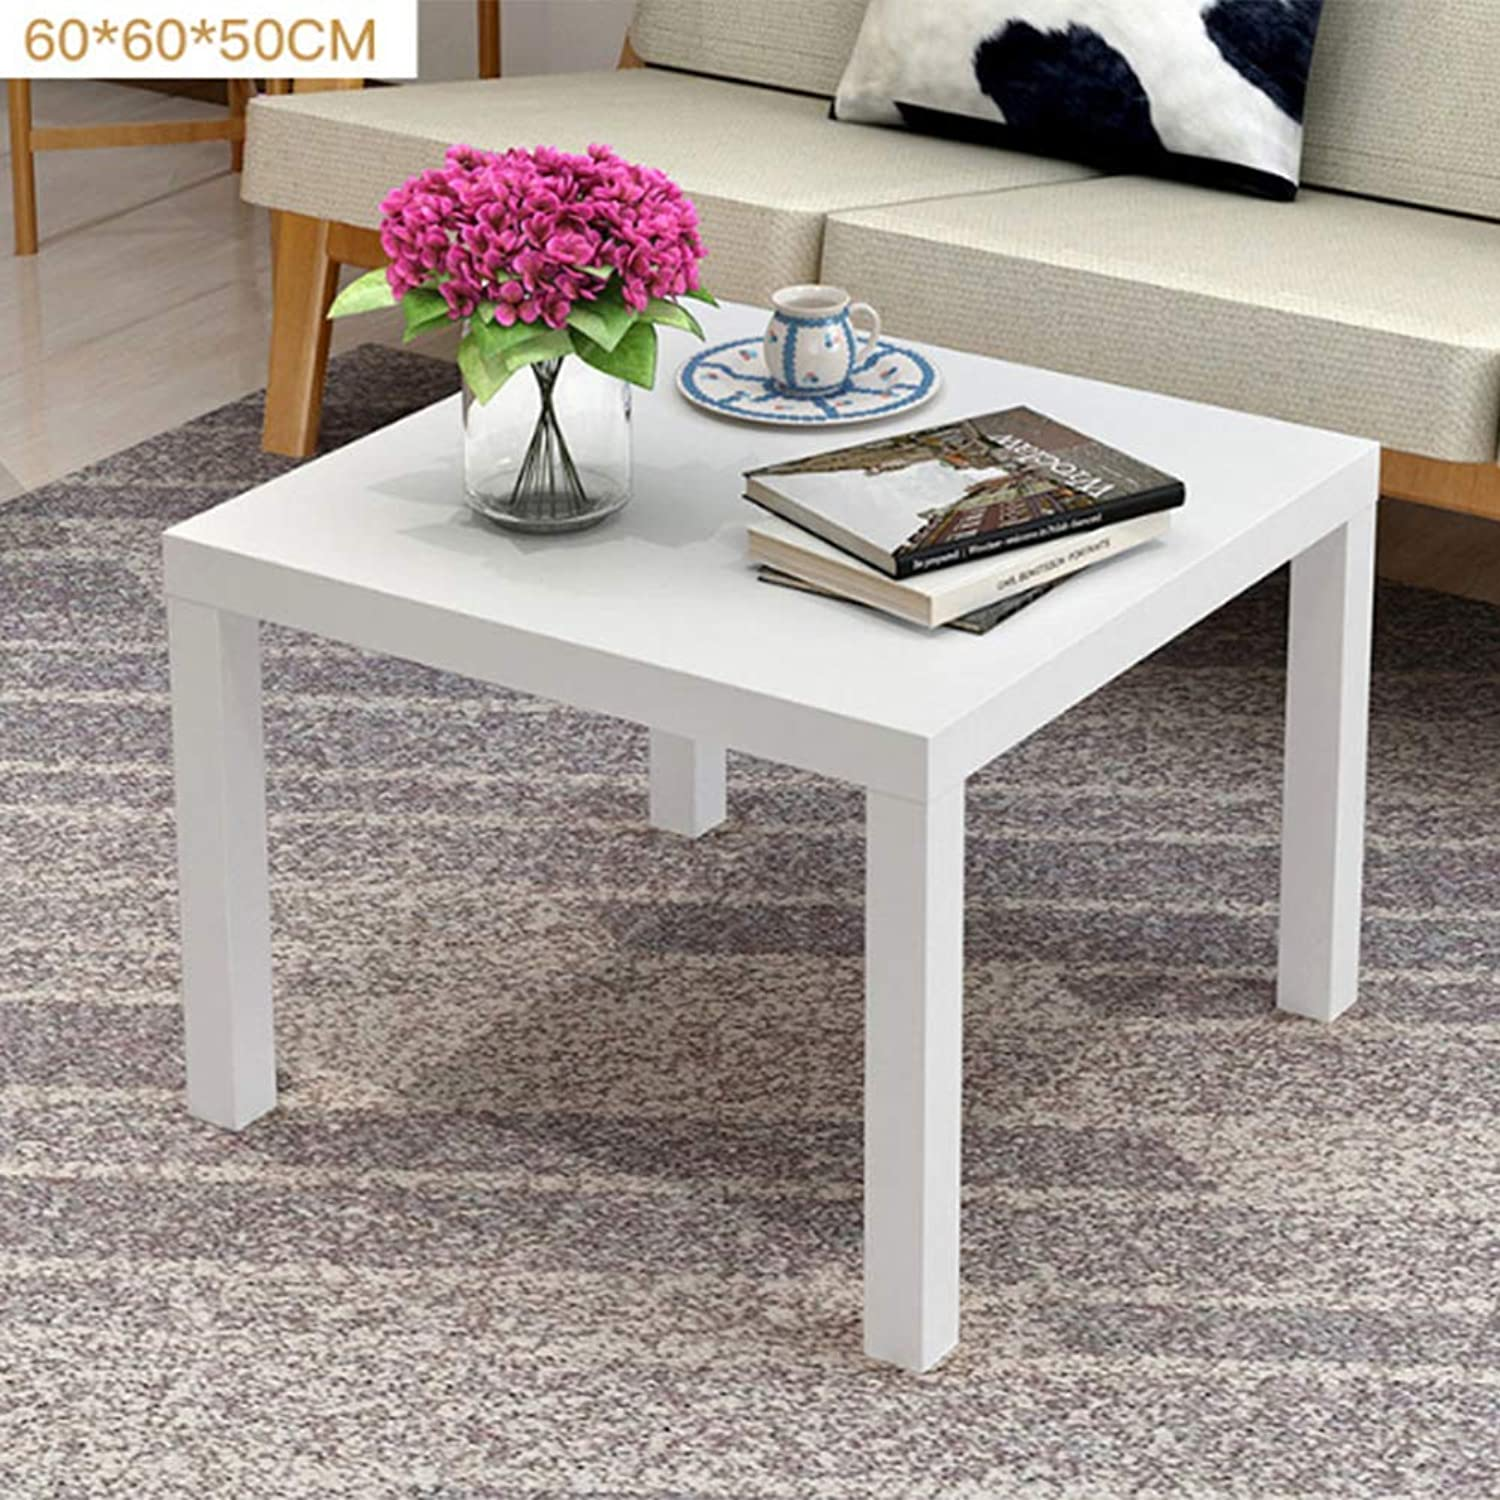 Living Room Furniture Square Coffee Table for Indoor and Outdoor Easy to Assemble 60  60  50Cm,B